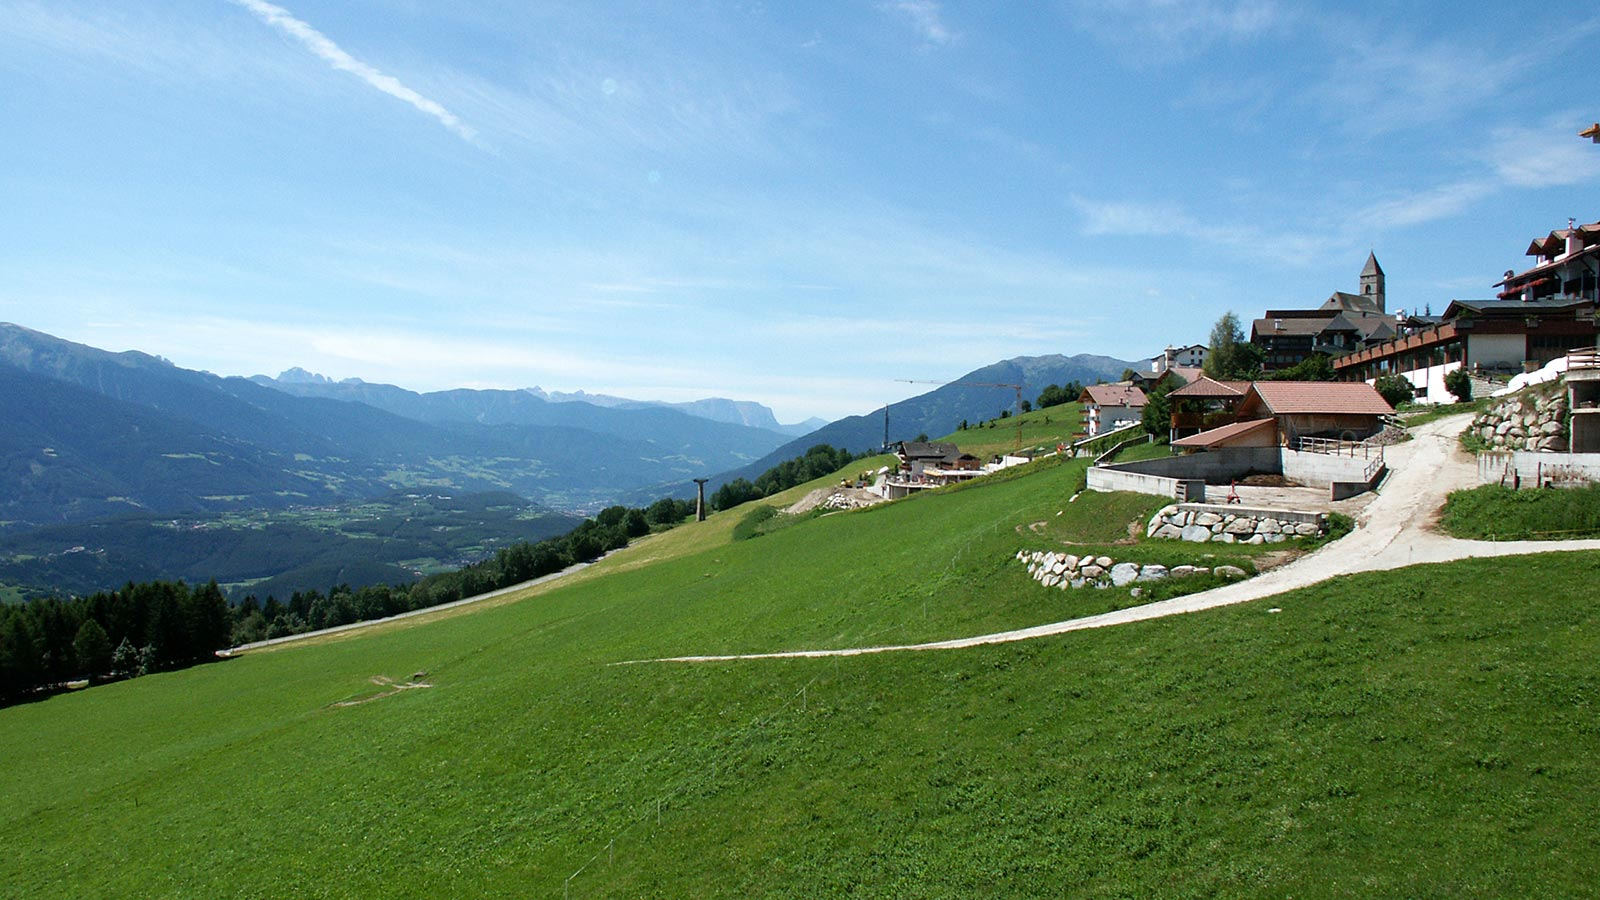 Panoramic view of Maranza during summer with green meadow and view of the valley below